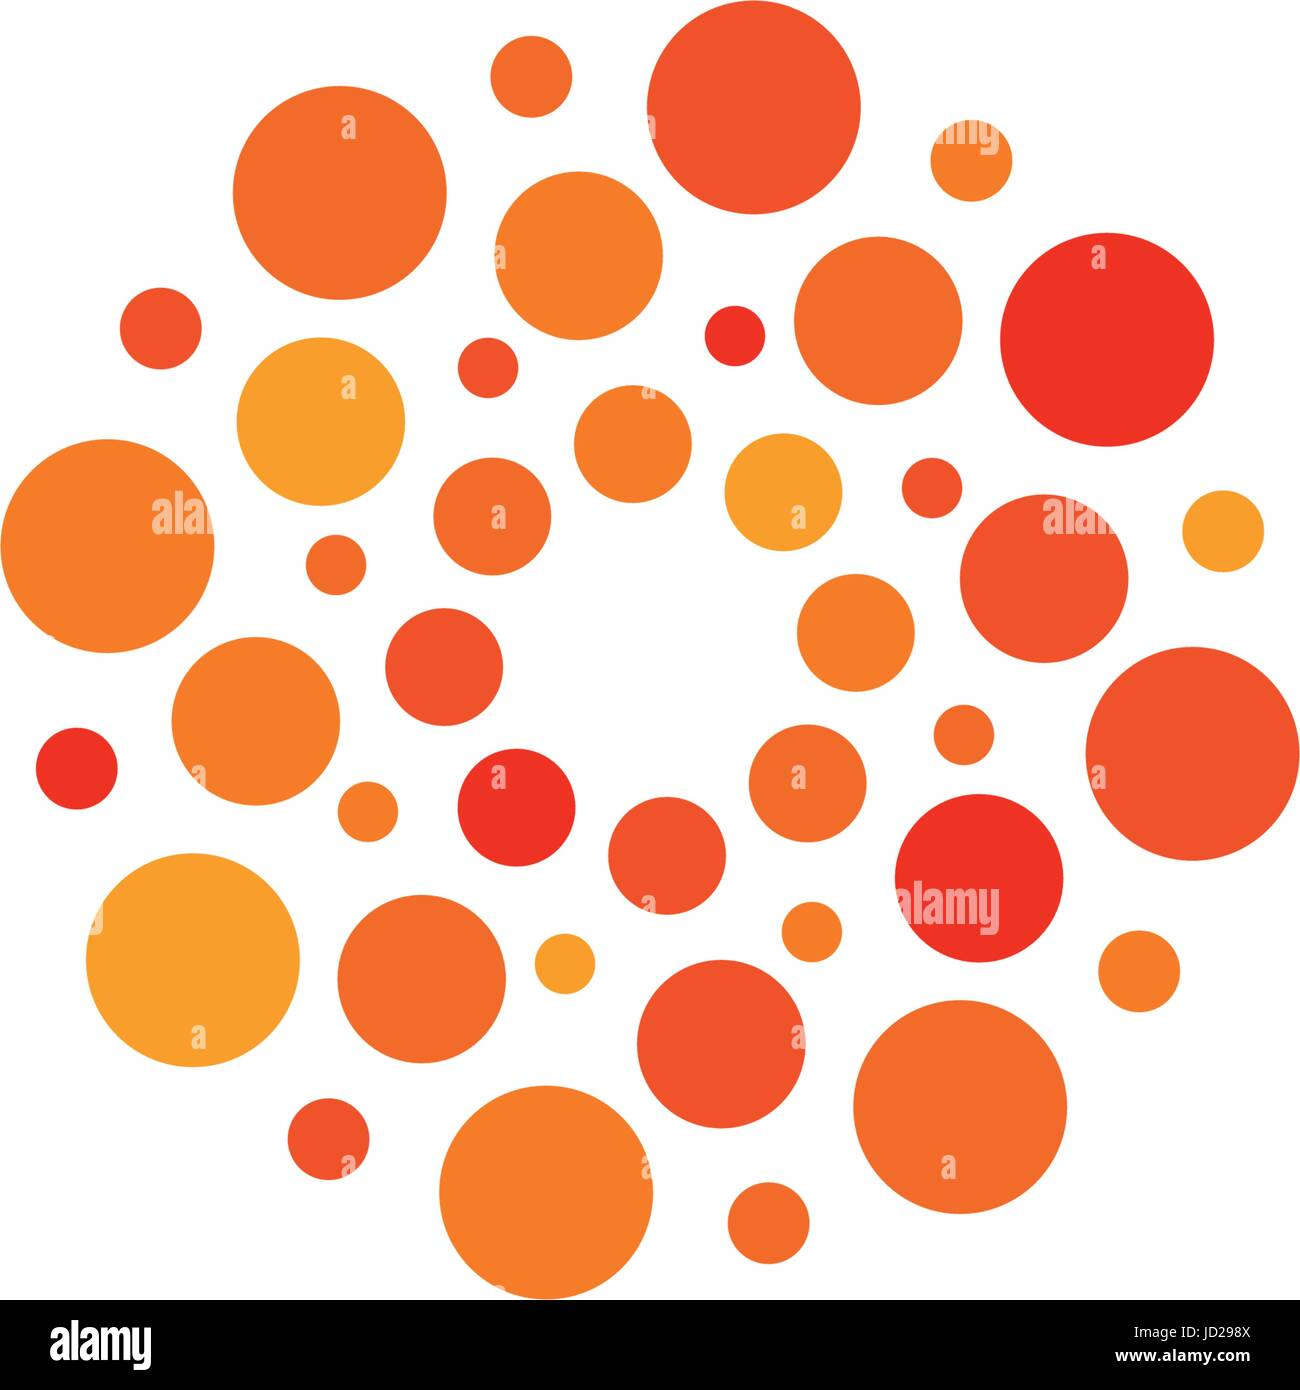 orange and white circle logo clipart library